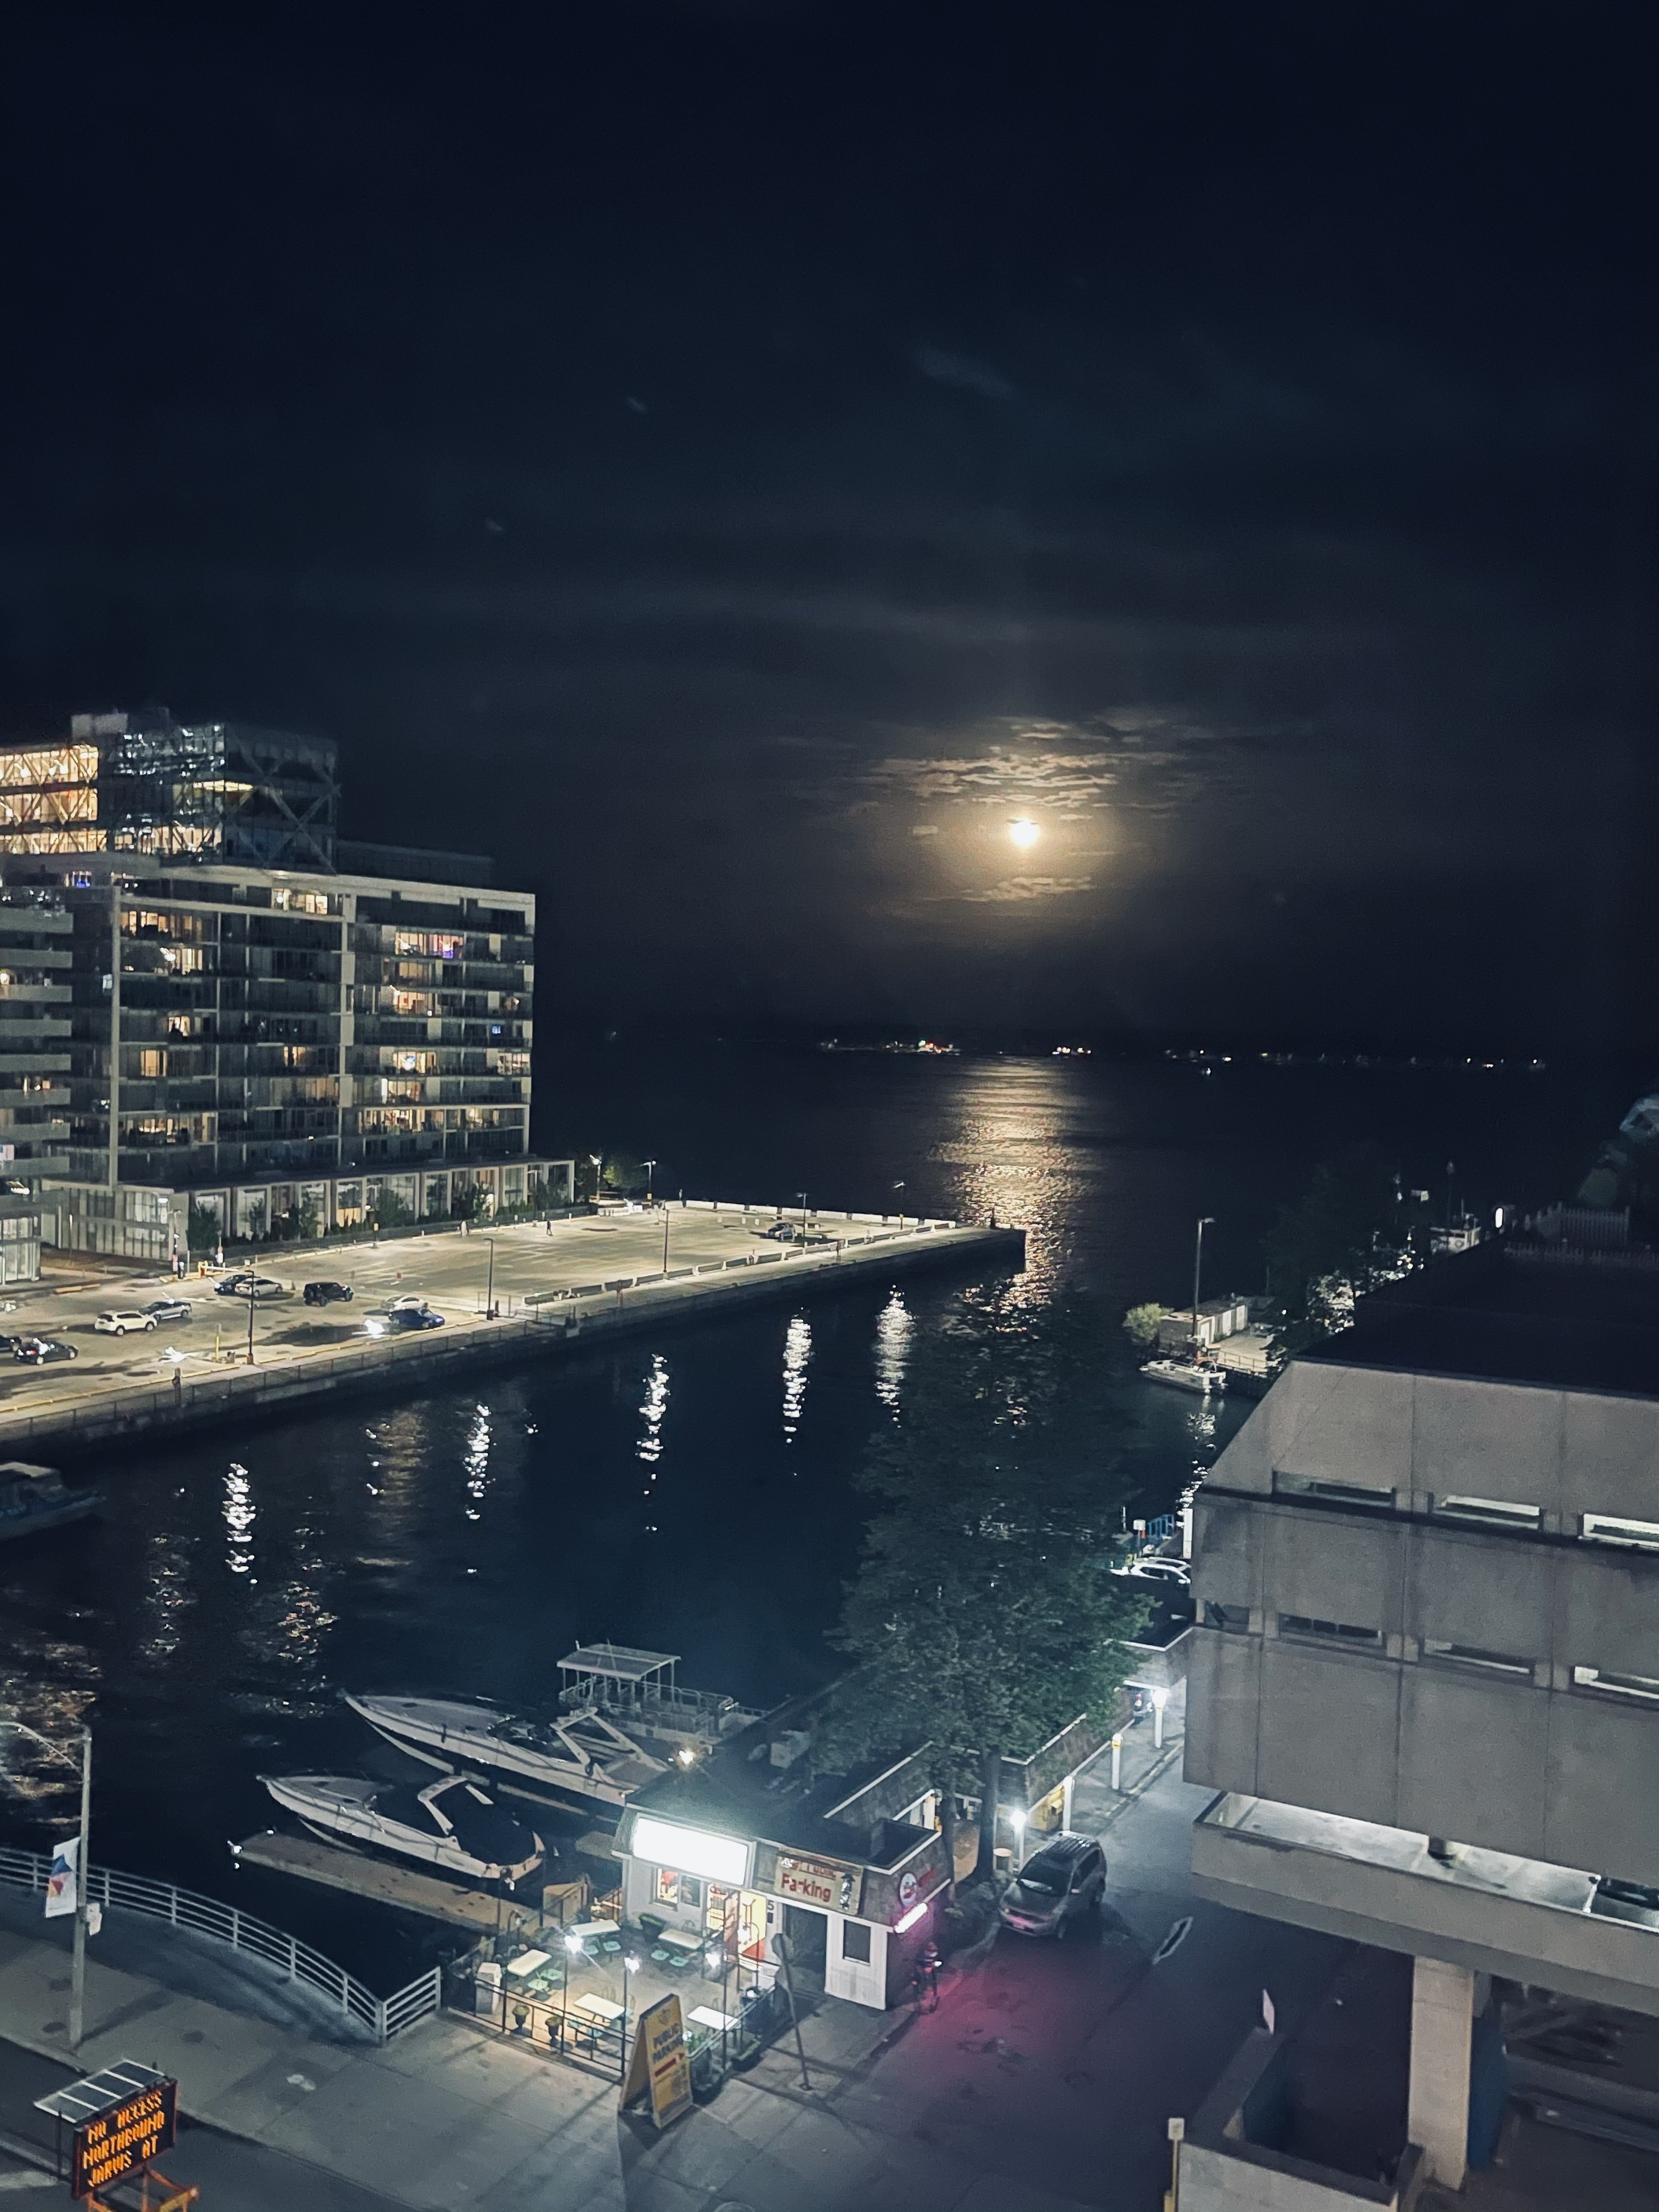 Full moon over the Toronto Waterfront